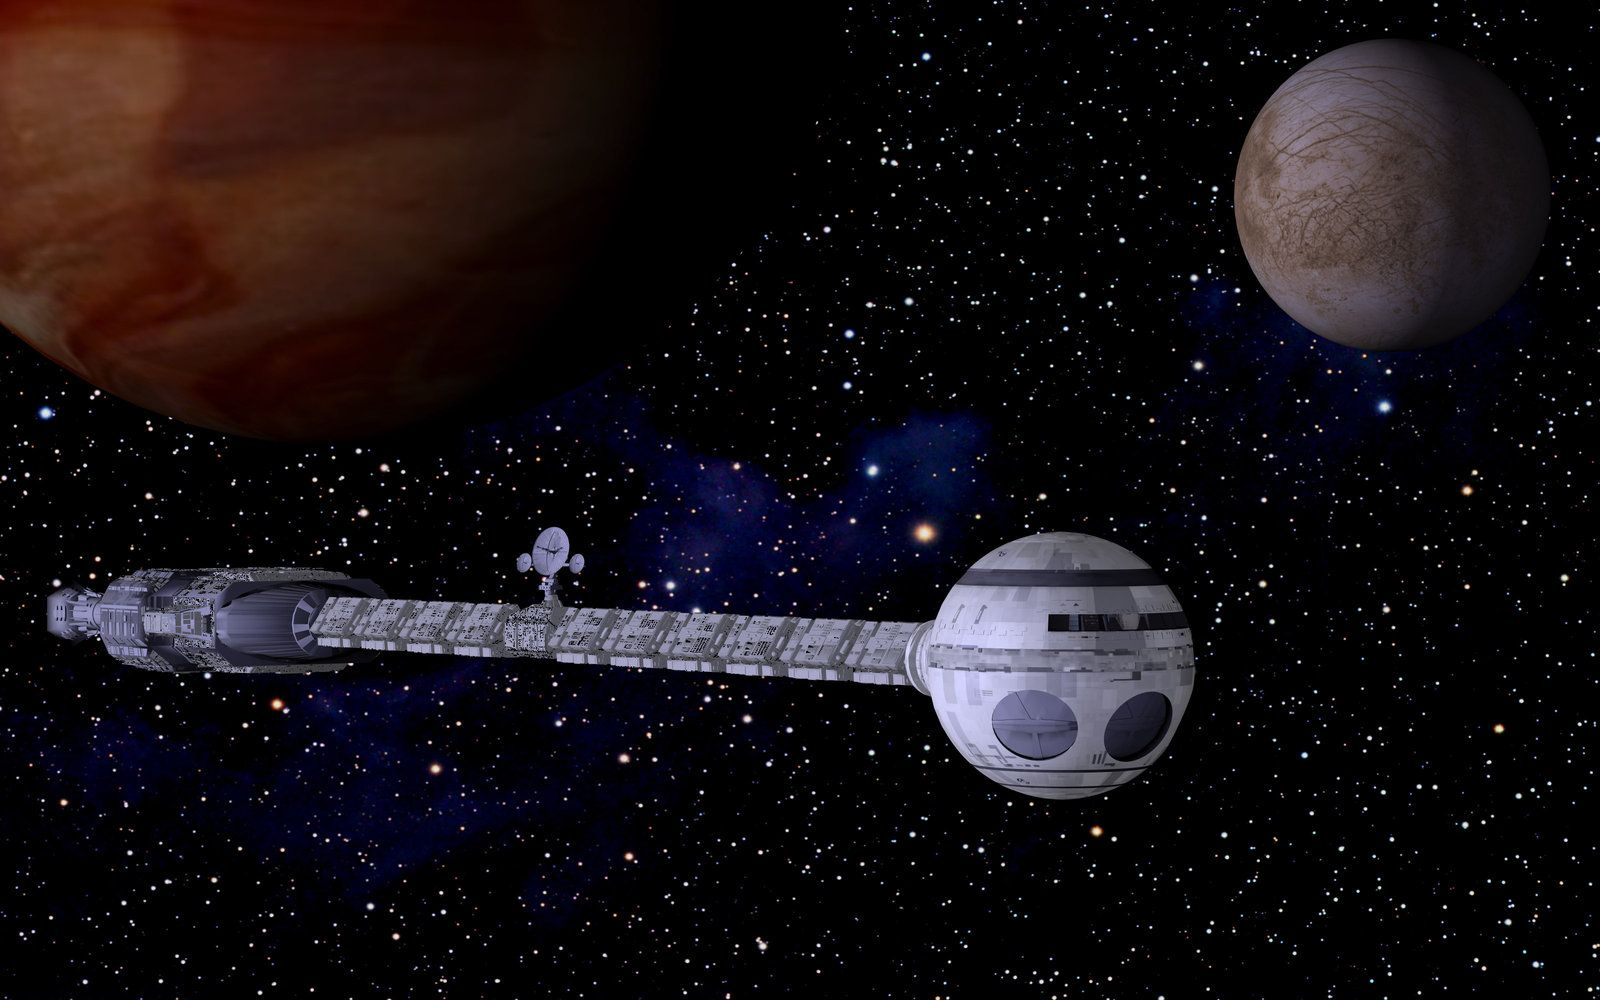 Spacecraft Discovery From 2001 - Pics about space